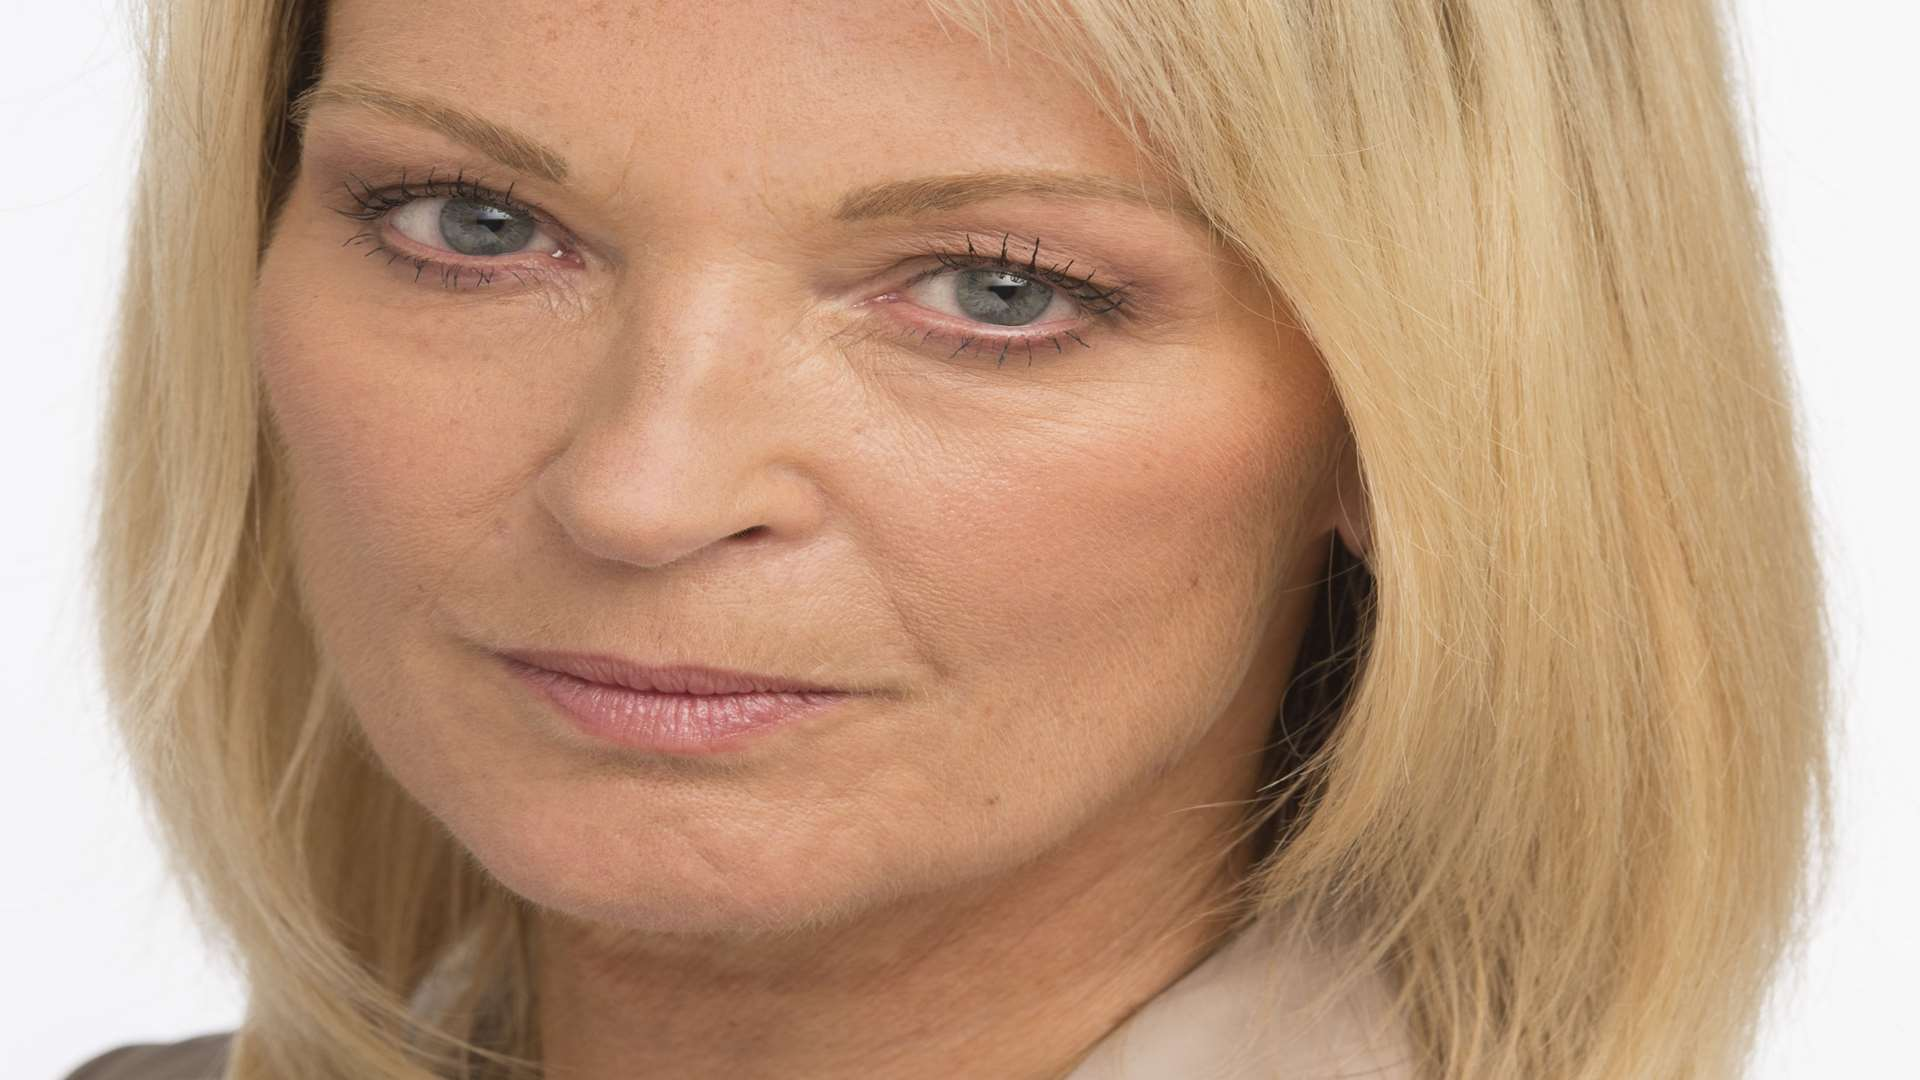 Kathy Sullivan, played by Gillian Taylforth